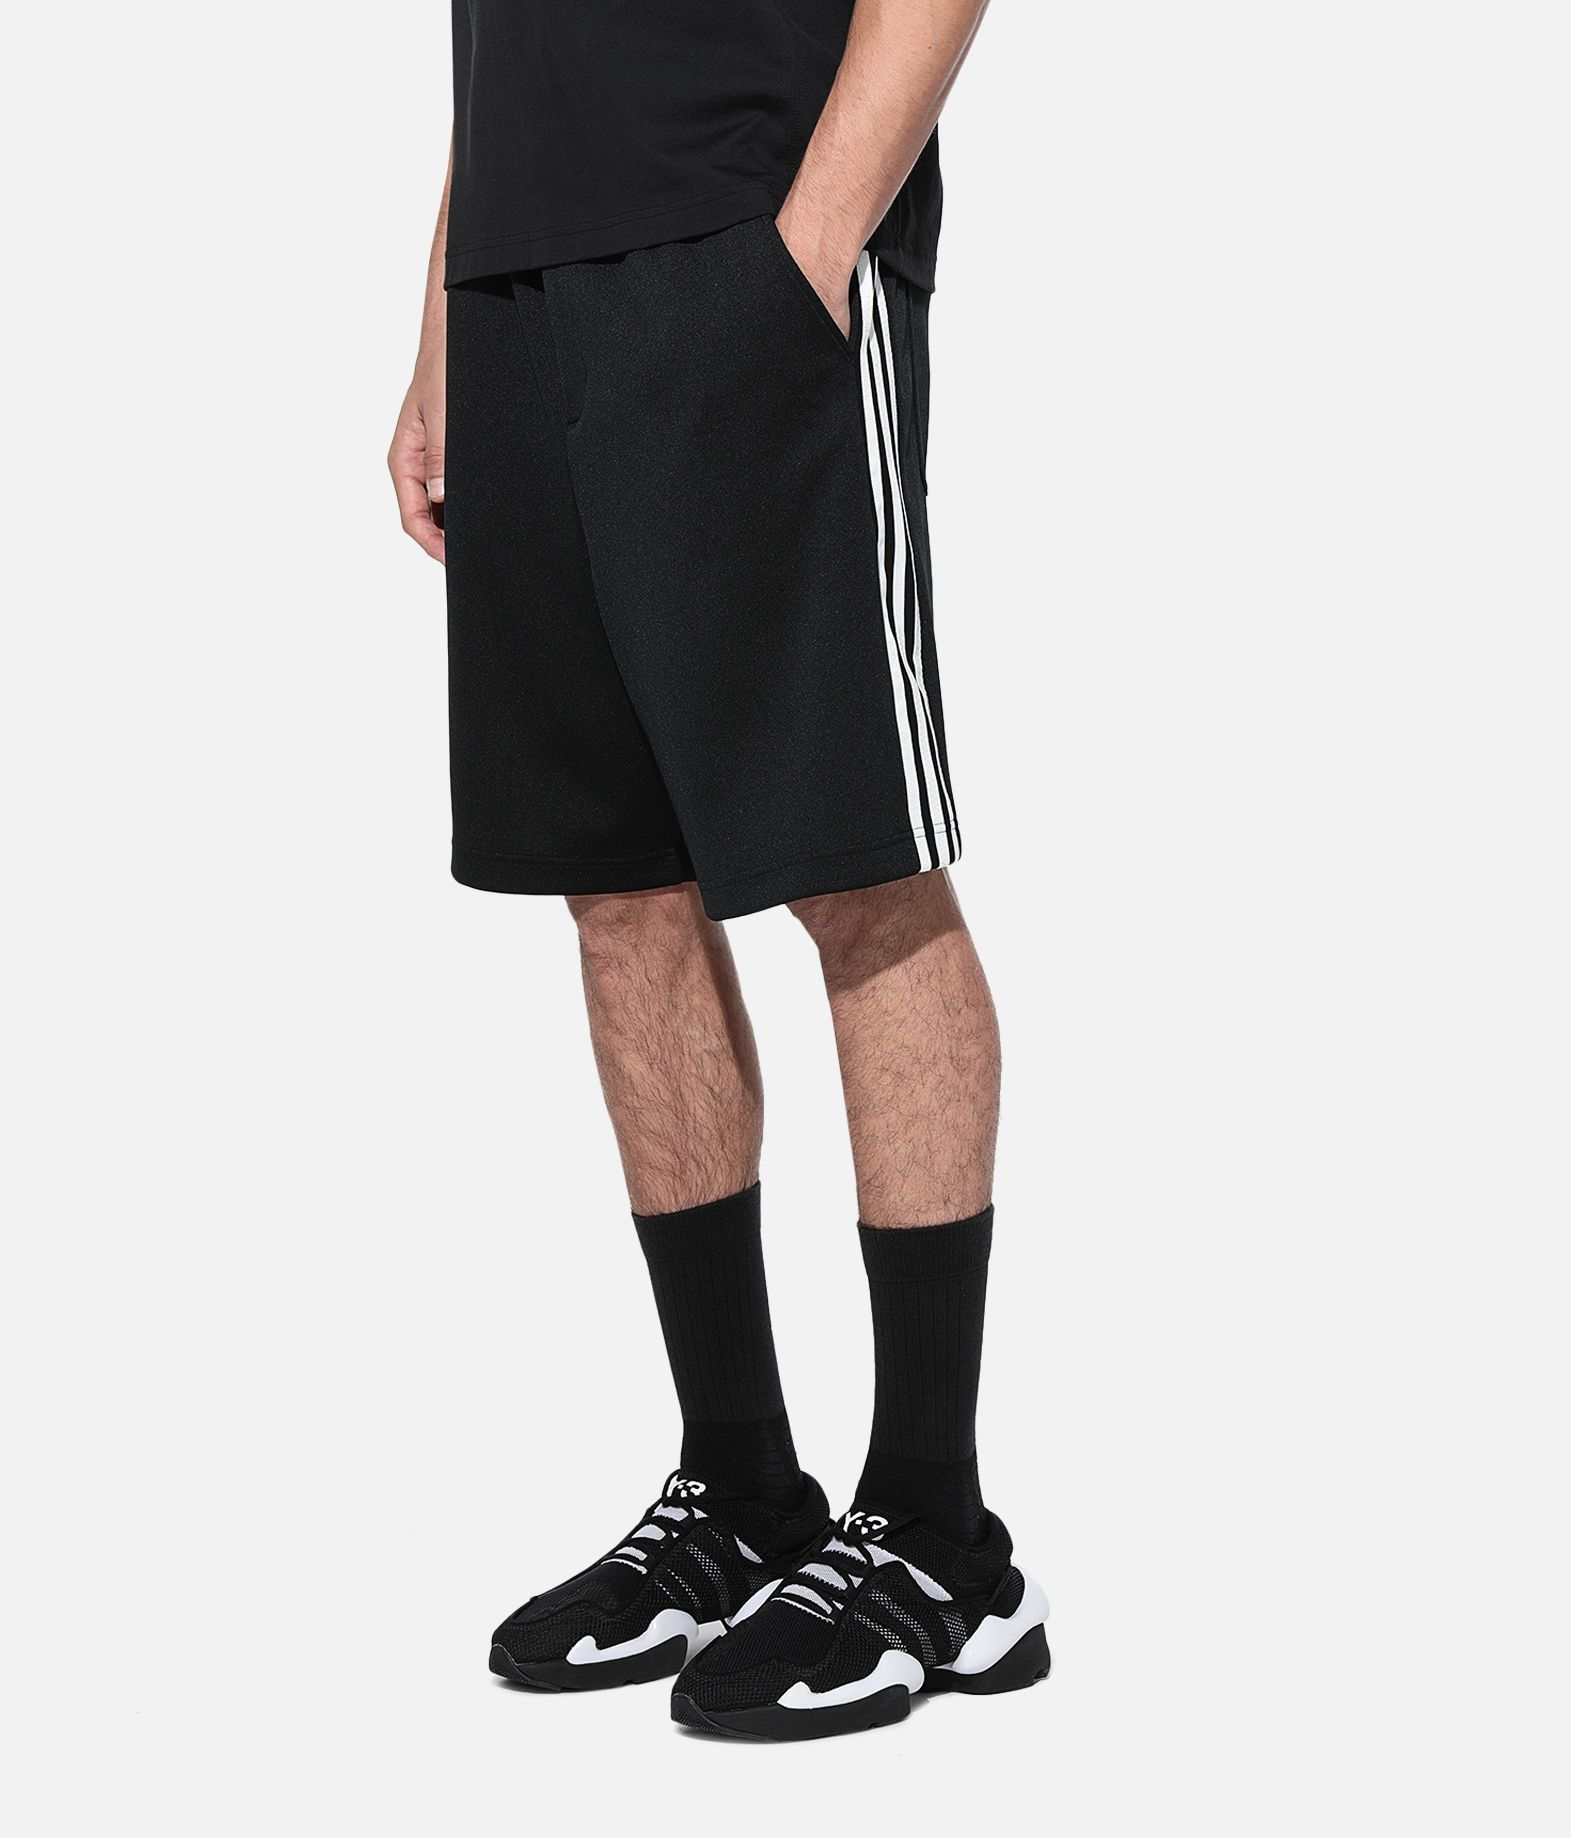 Y-3 Y-3 3-Stripes Track Shorts Track pant Man e